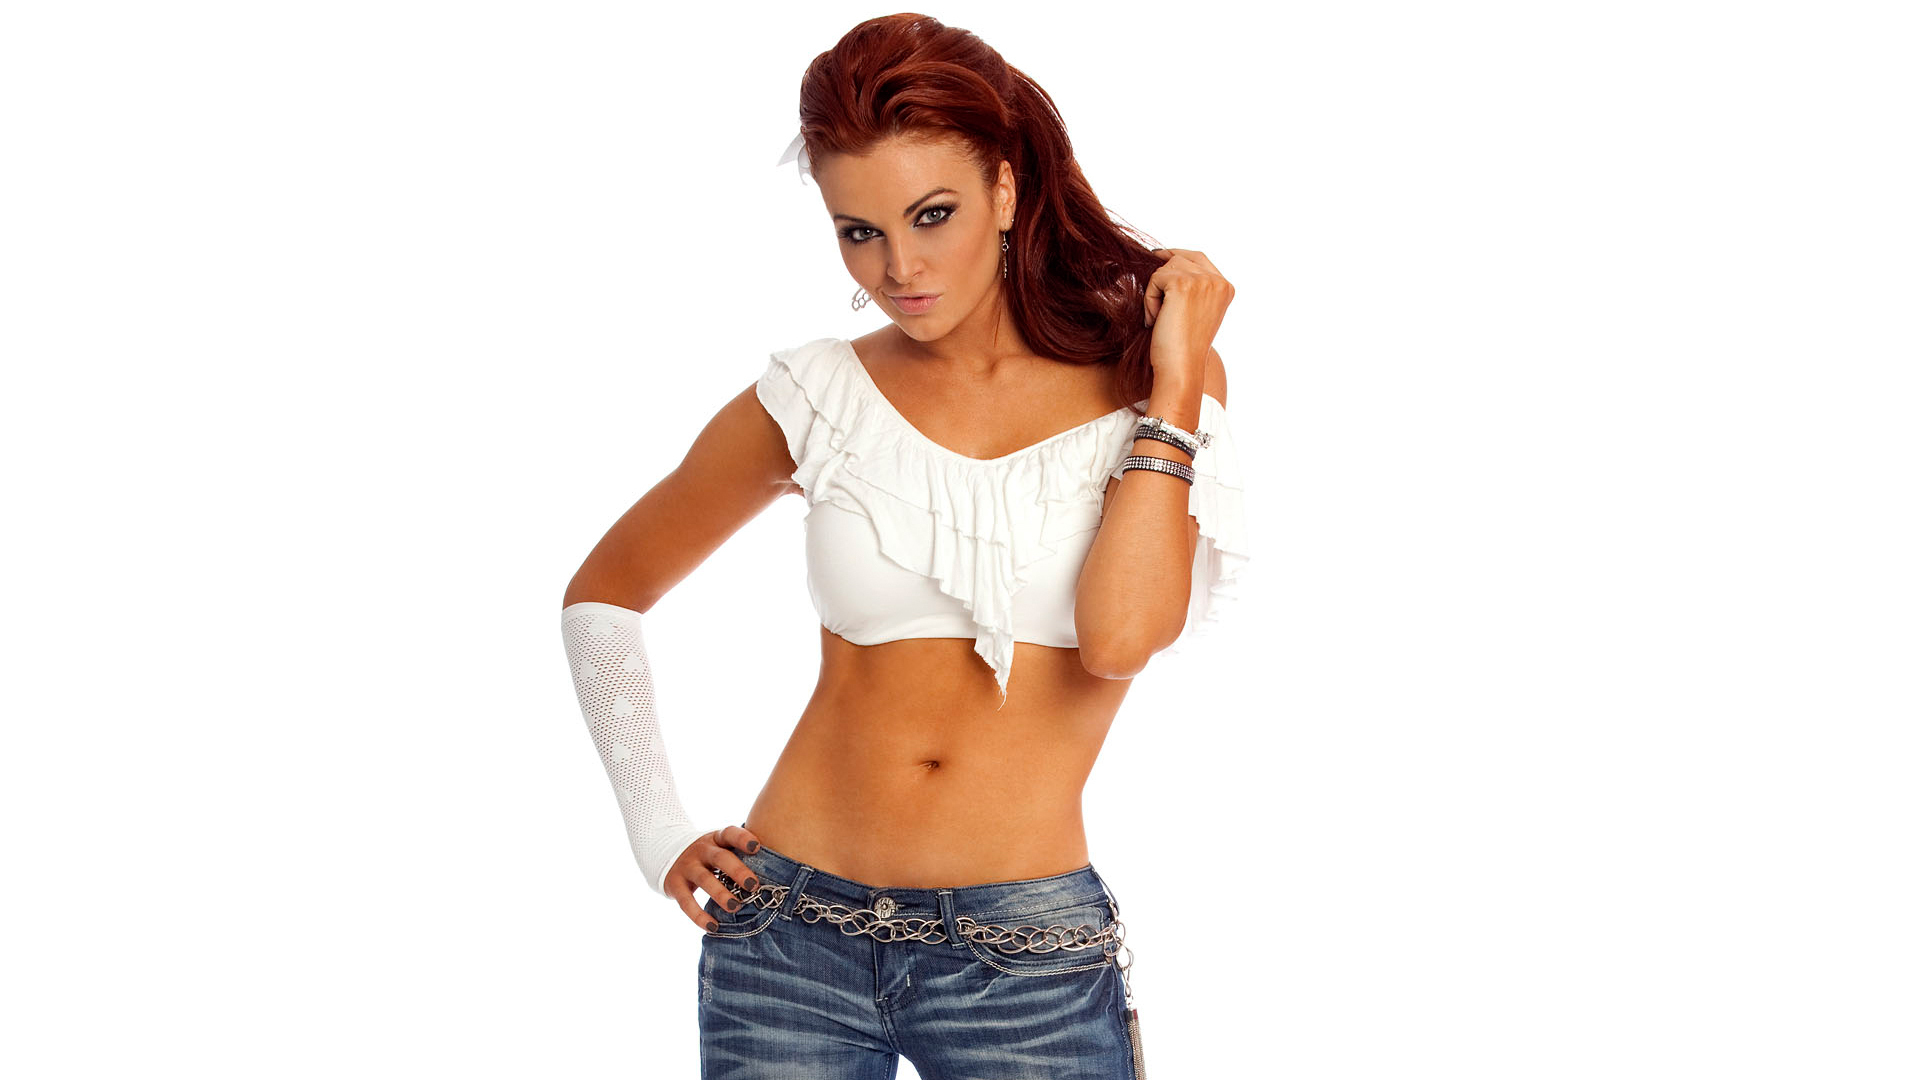 1920x1080 - Maria Kanellis Wallpapers 21